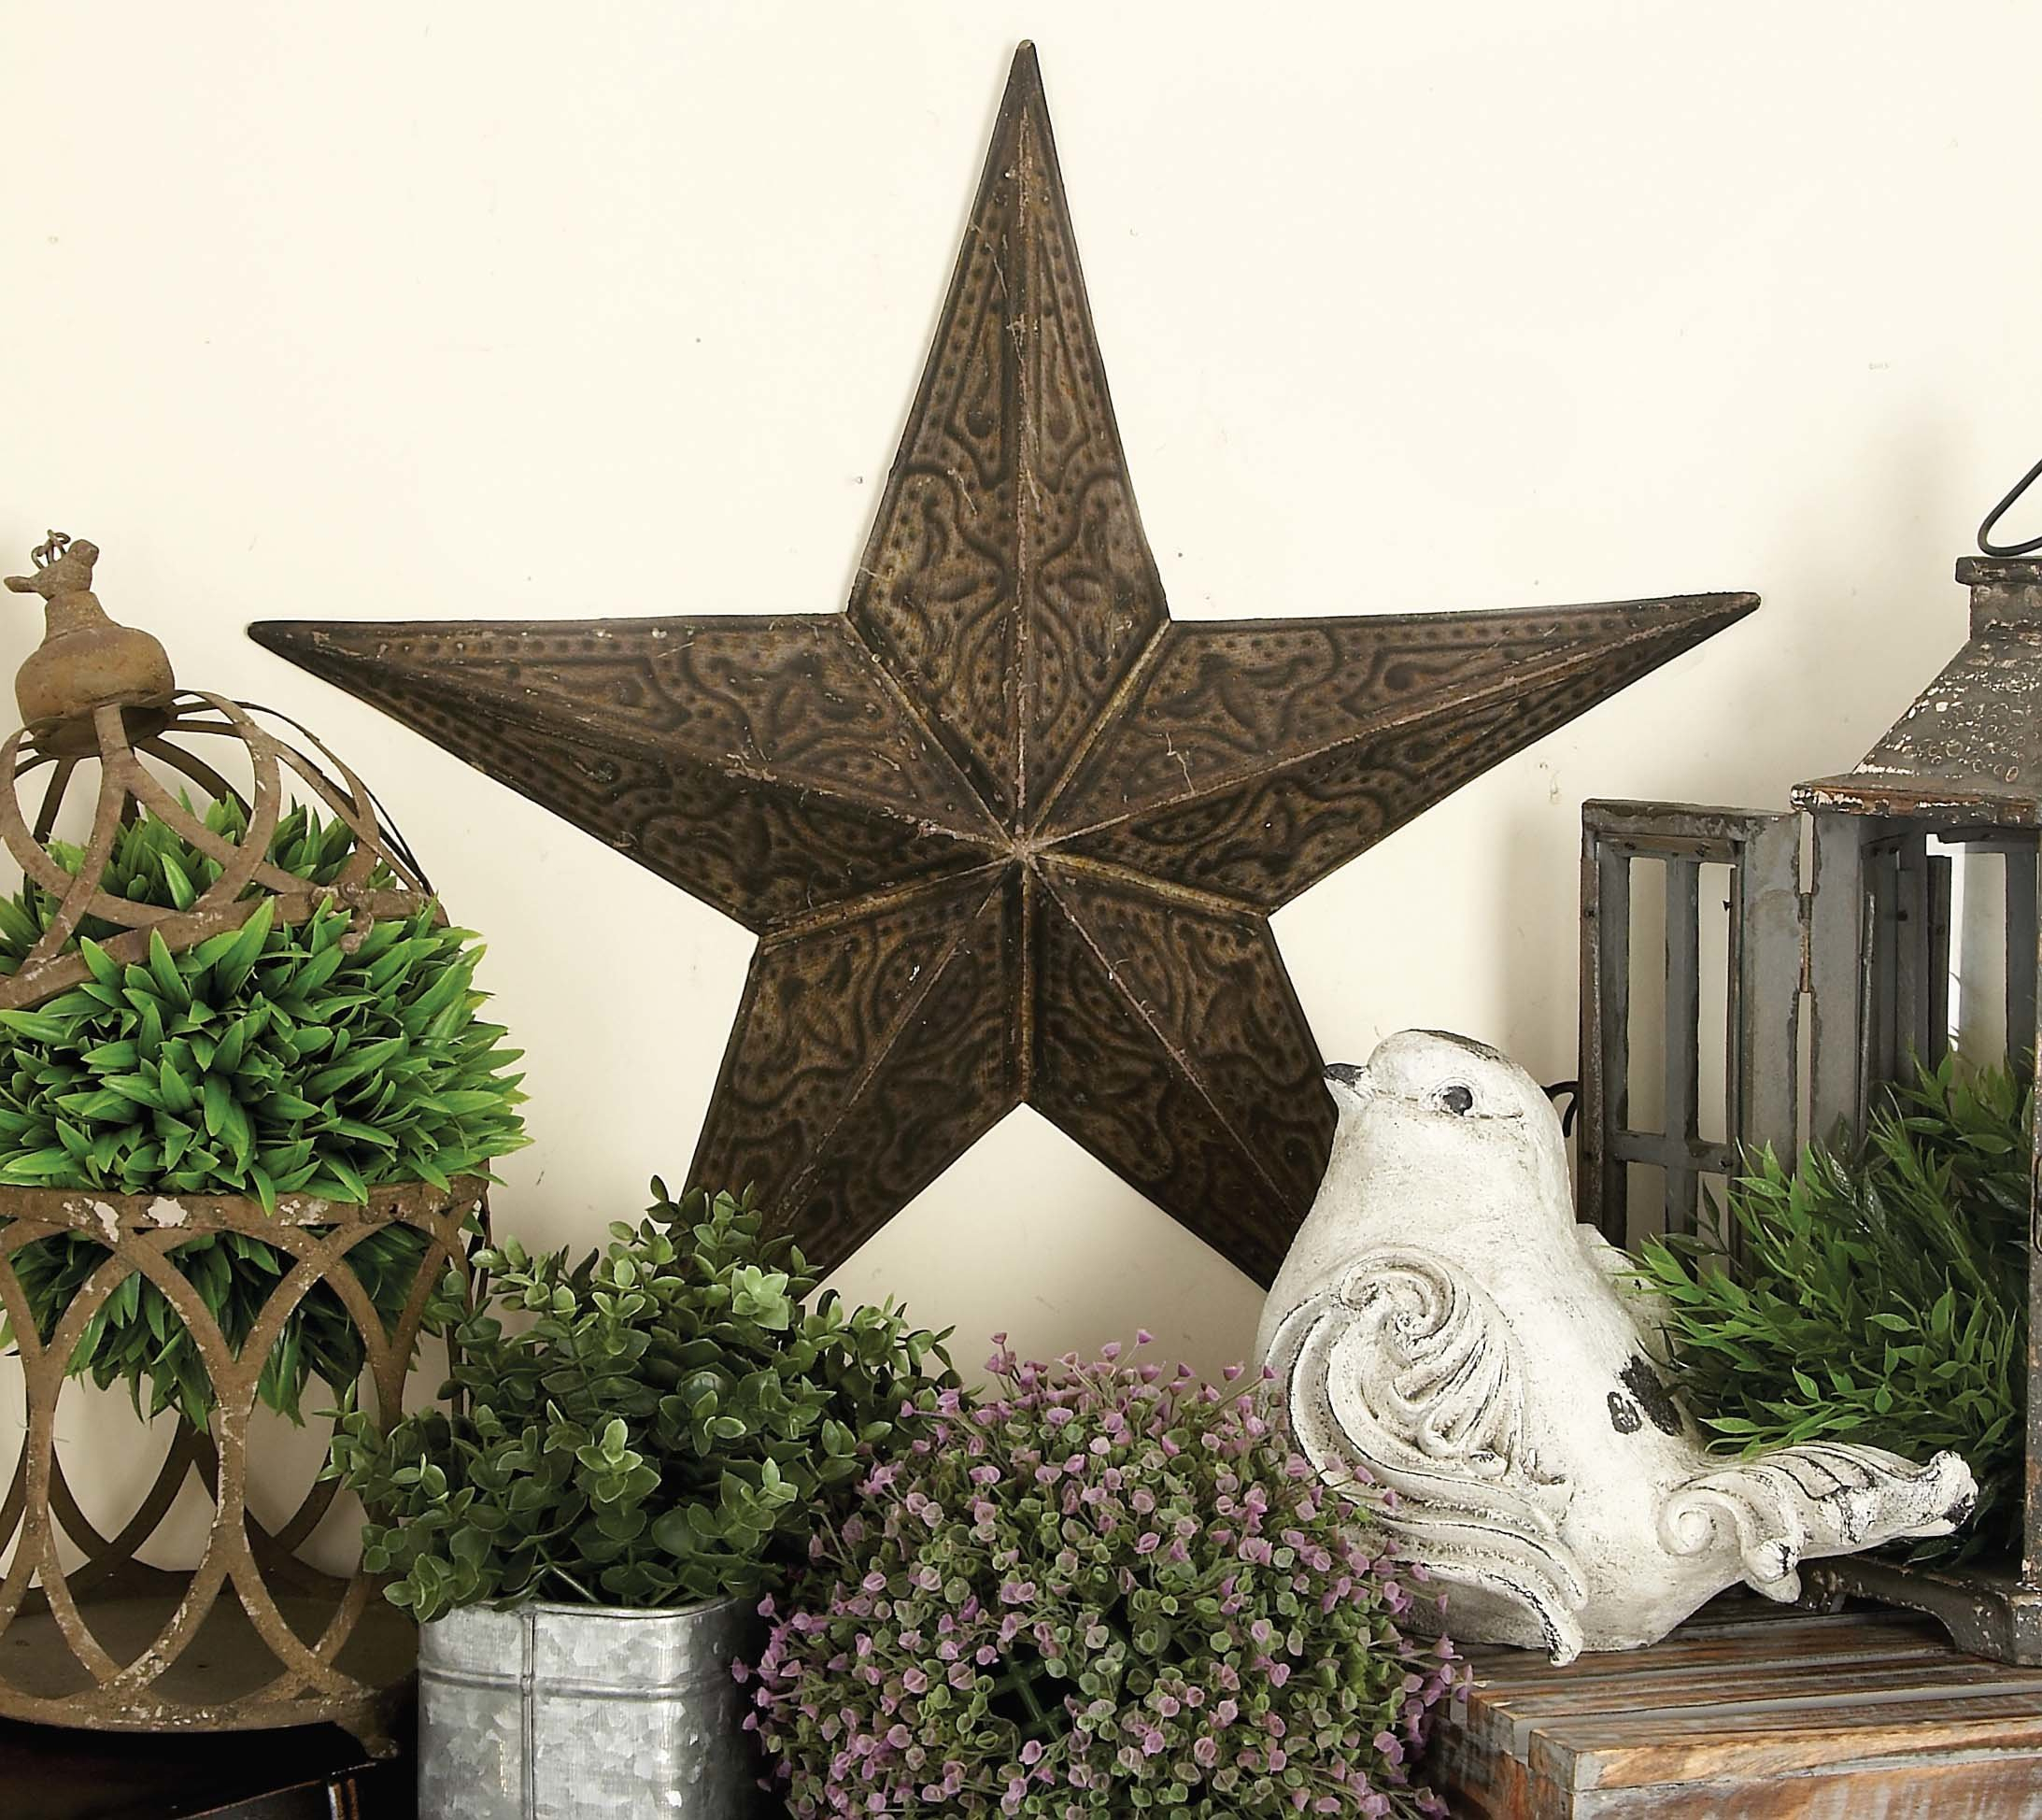 Beachcrest Home 3 Piece Artistic Stars Decorative Wall Décor Throughout 3 Piece Star Wall Decor Sets (View 13 of 30)